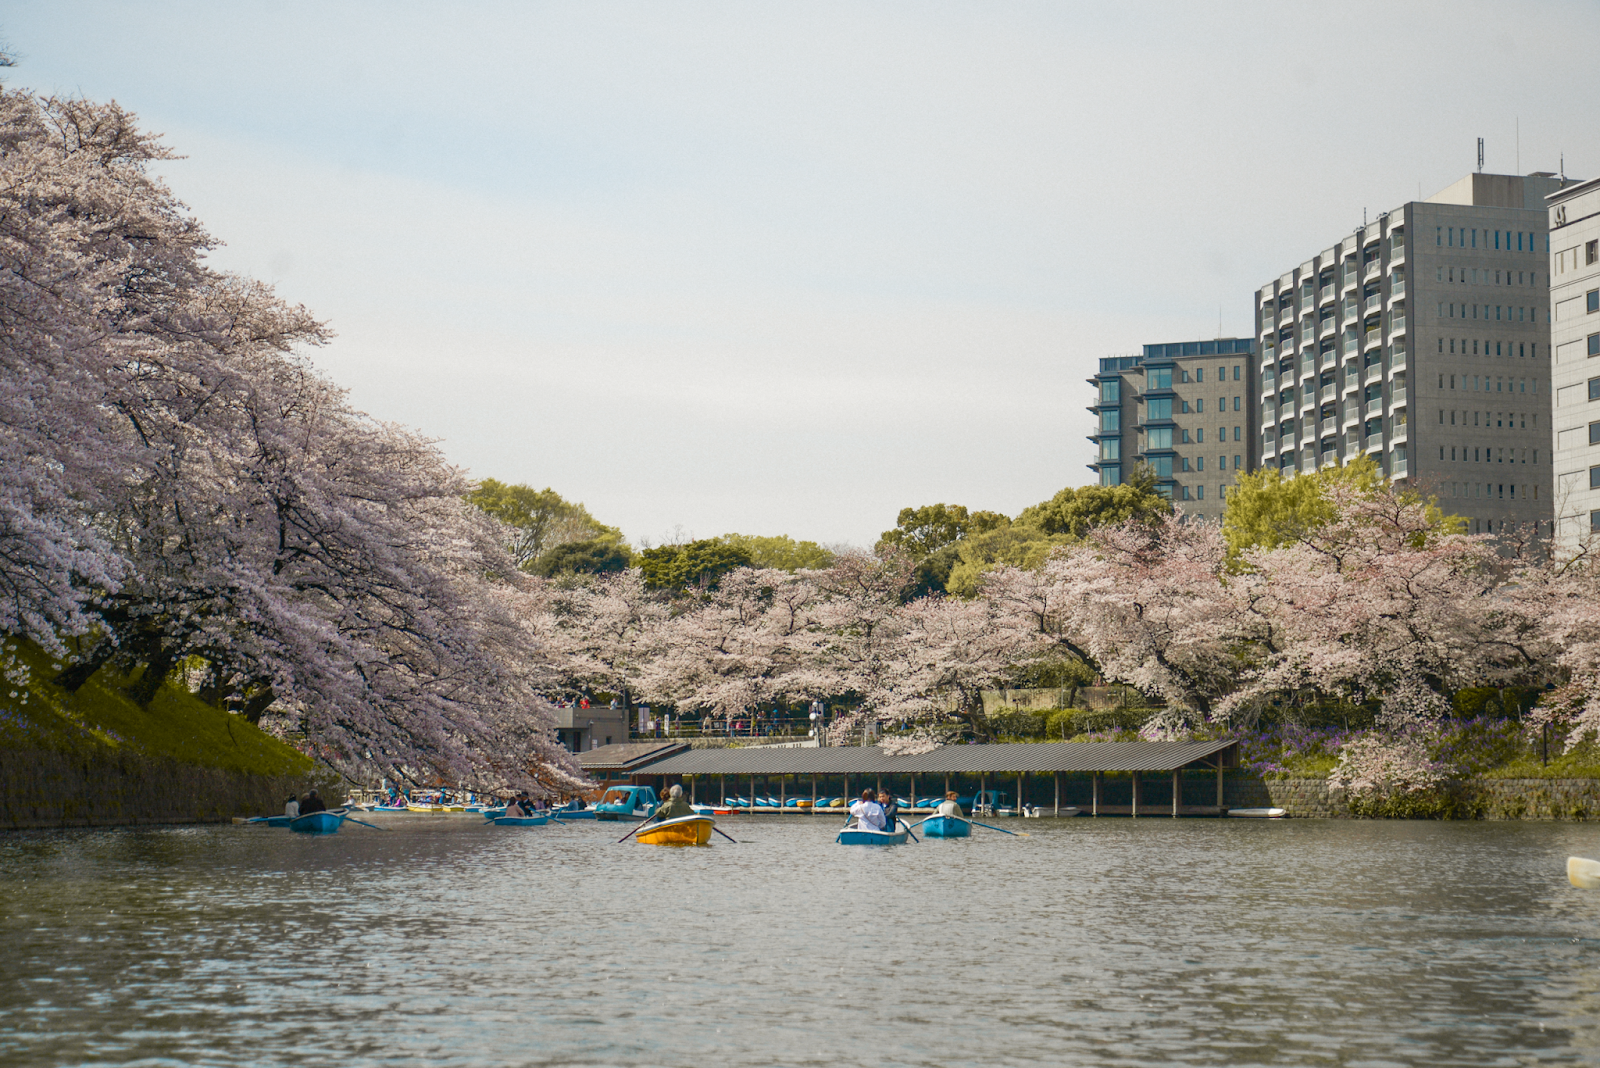 Cherry blossom basen in Tokyo, row boats cherry blossom viewing, cherry blossom lake Tokyo, Spring activities in Tokyo, FOREVERVANNY